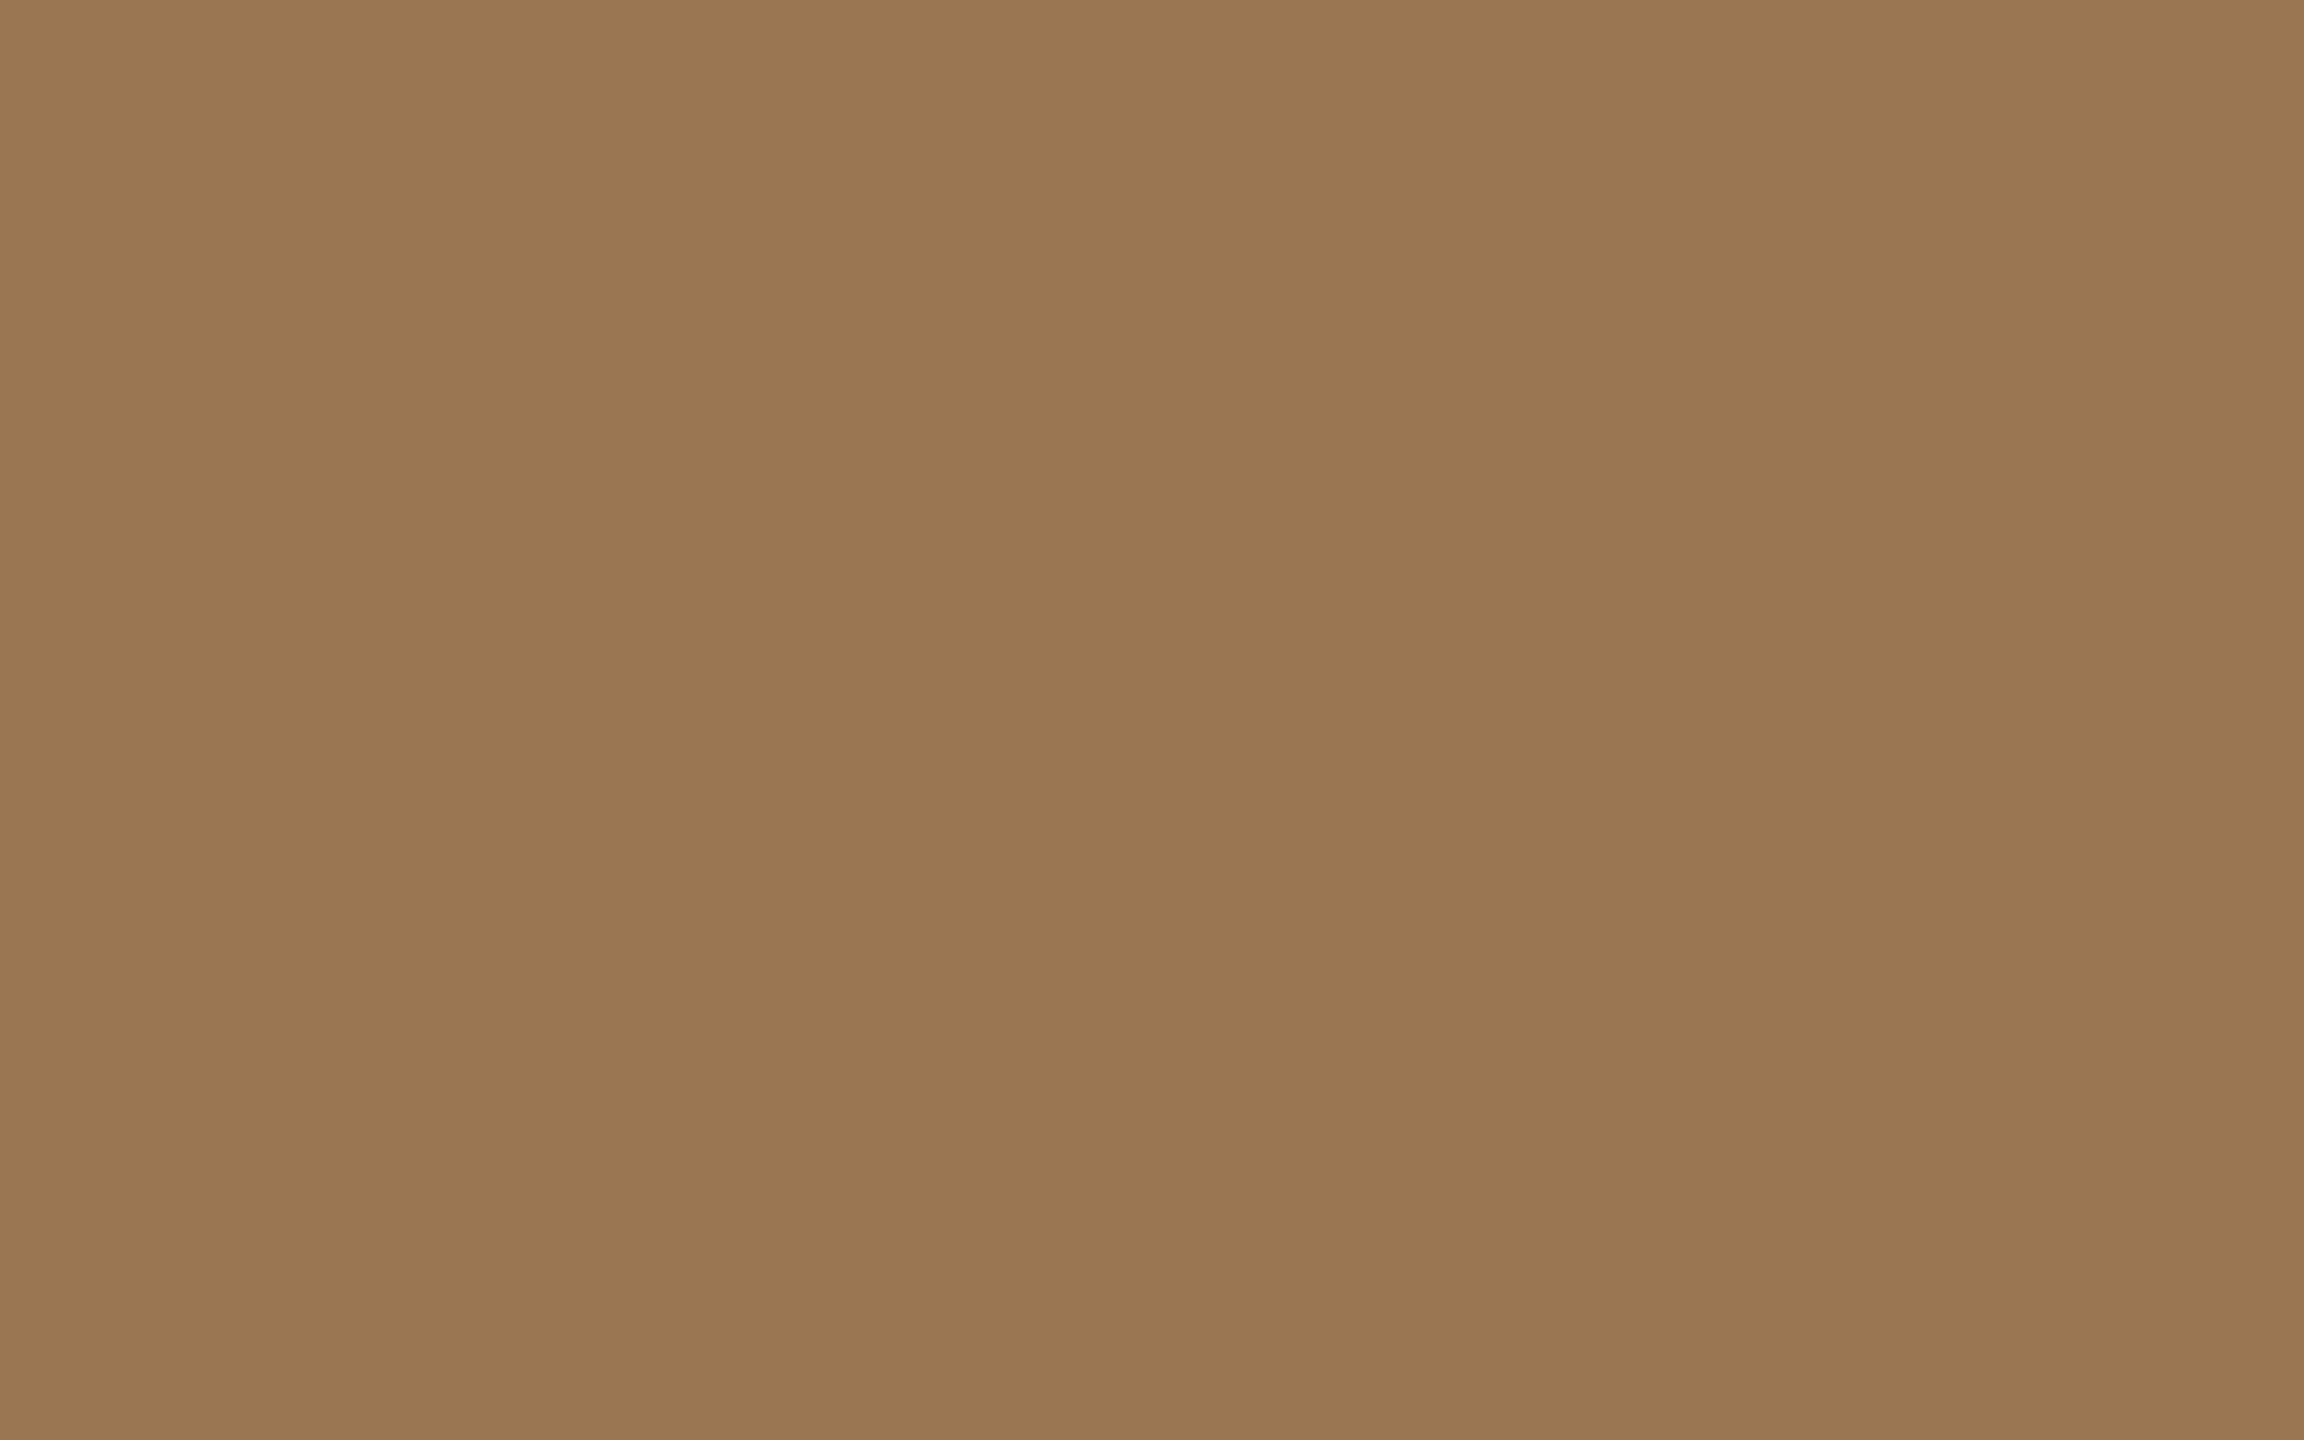 2304x1440 Dirt Solid Color Background